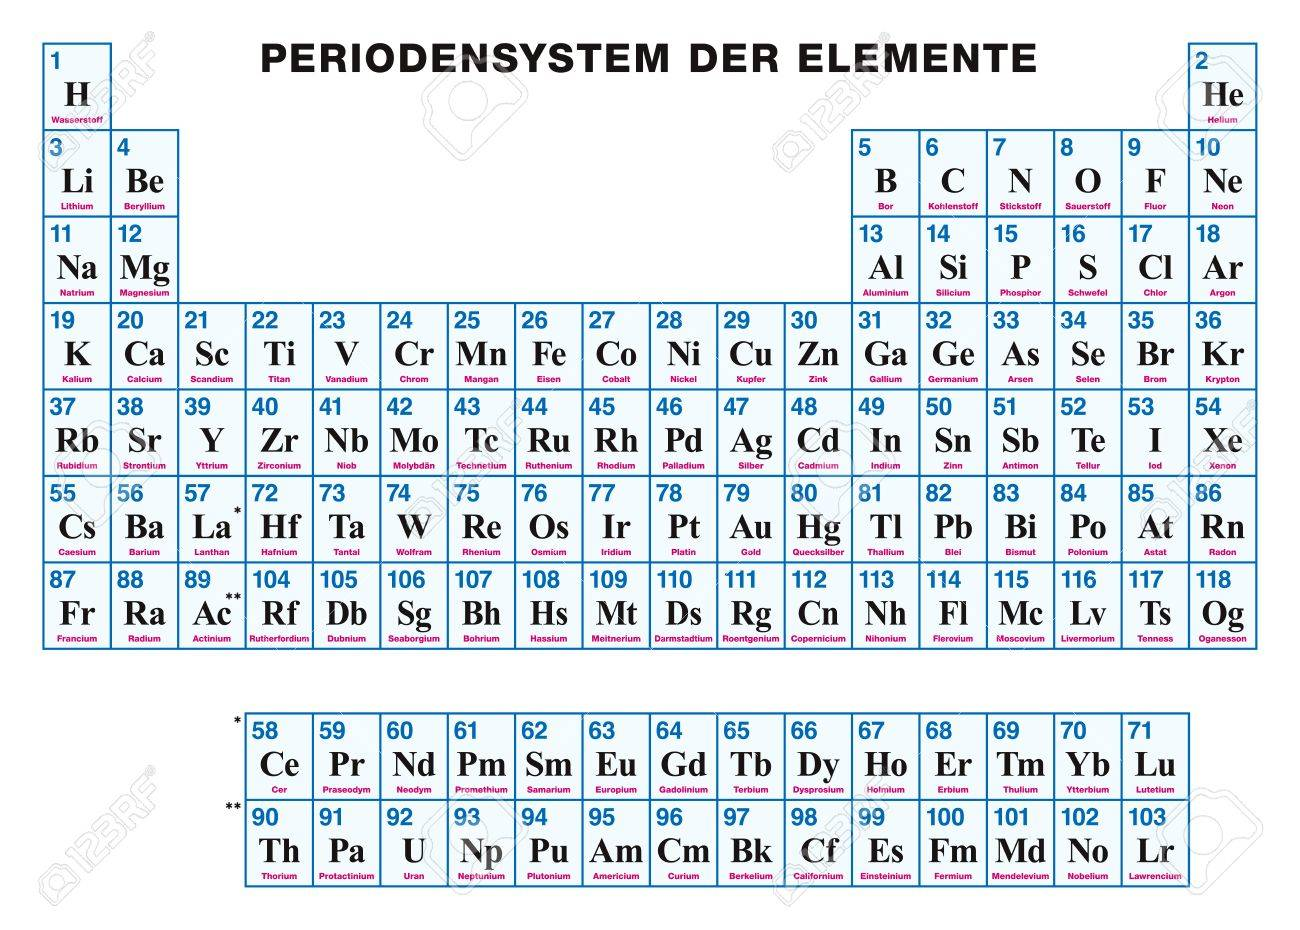 Periodic table of the elements german tabular arrangement of the periodic table of the elements german tabular arrangement of the chemical elements with their urtaz Images